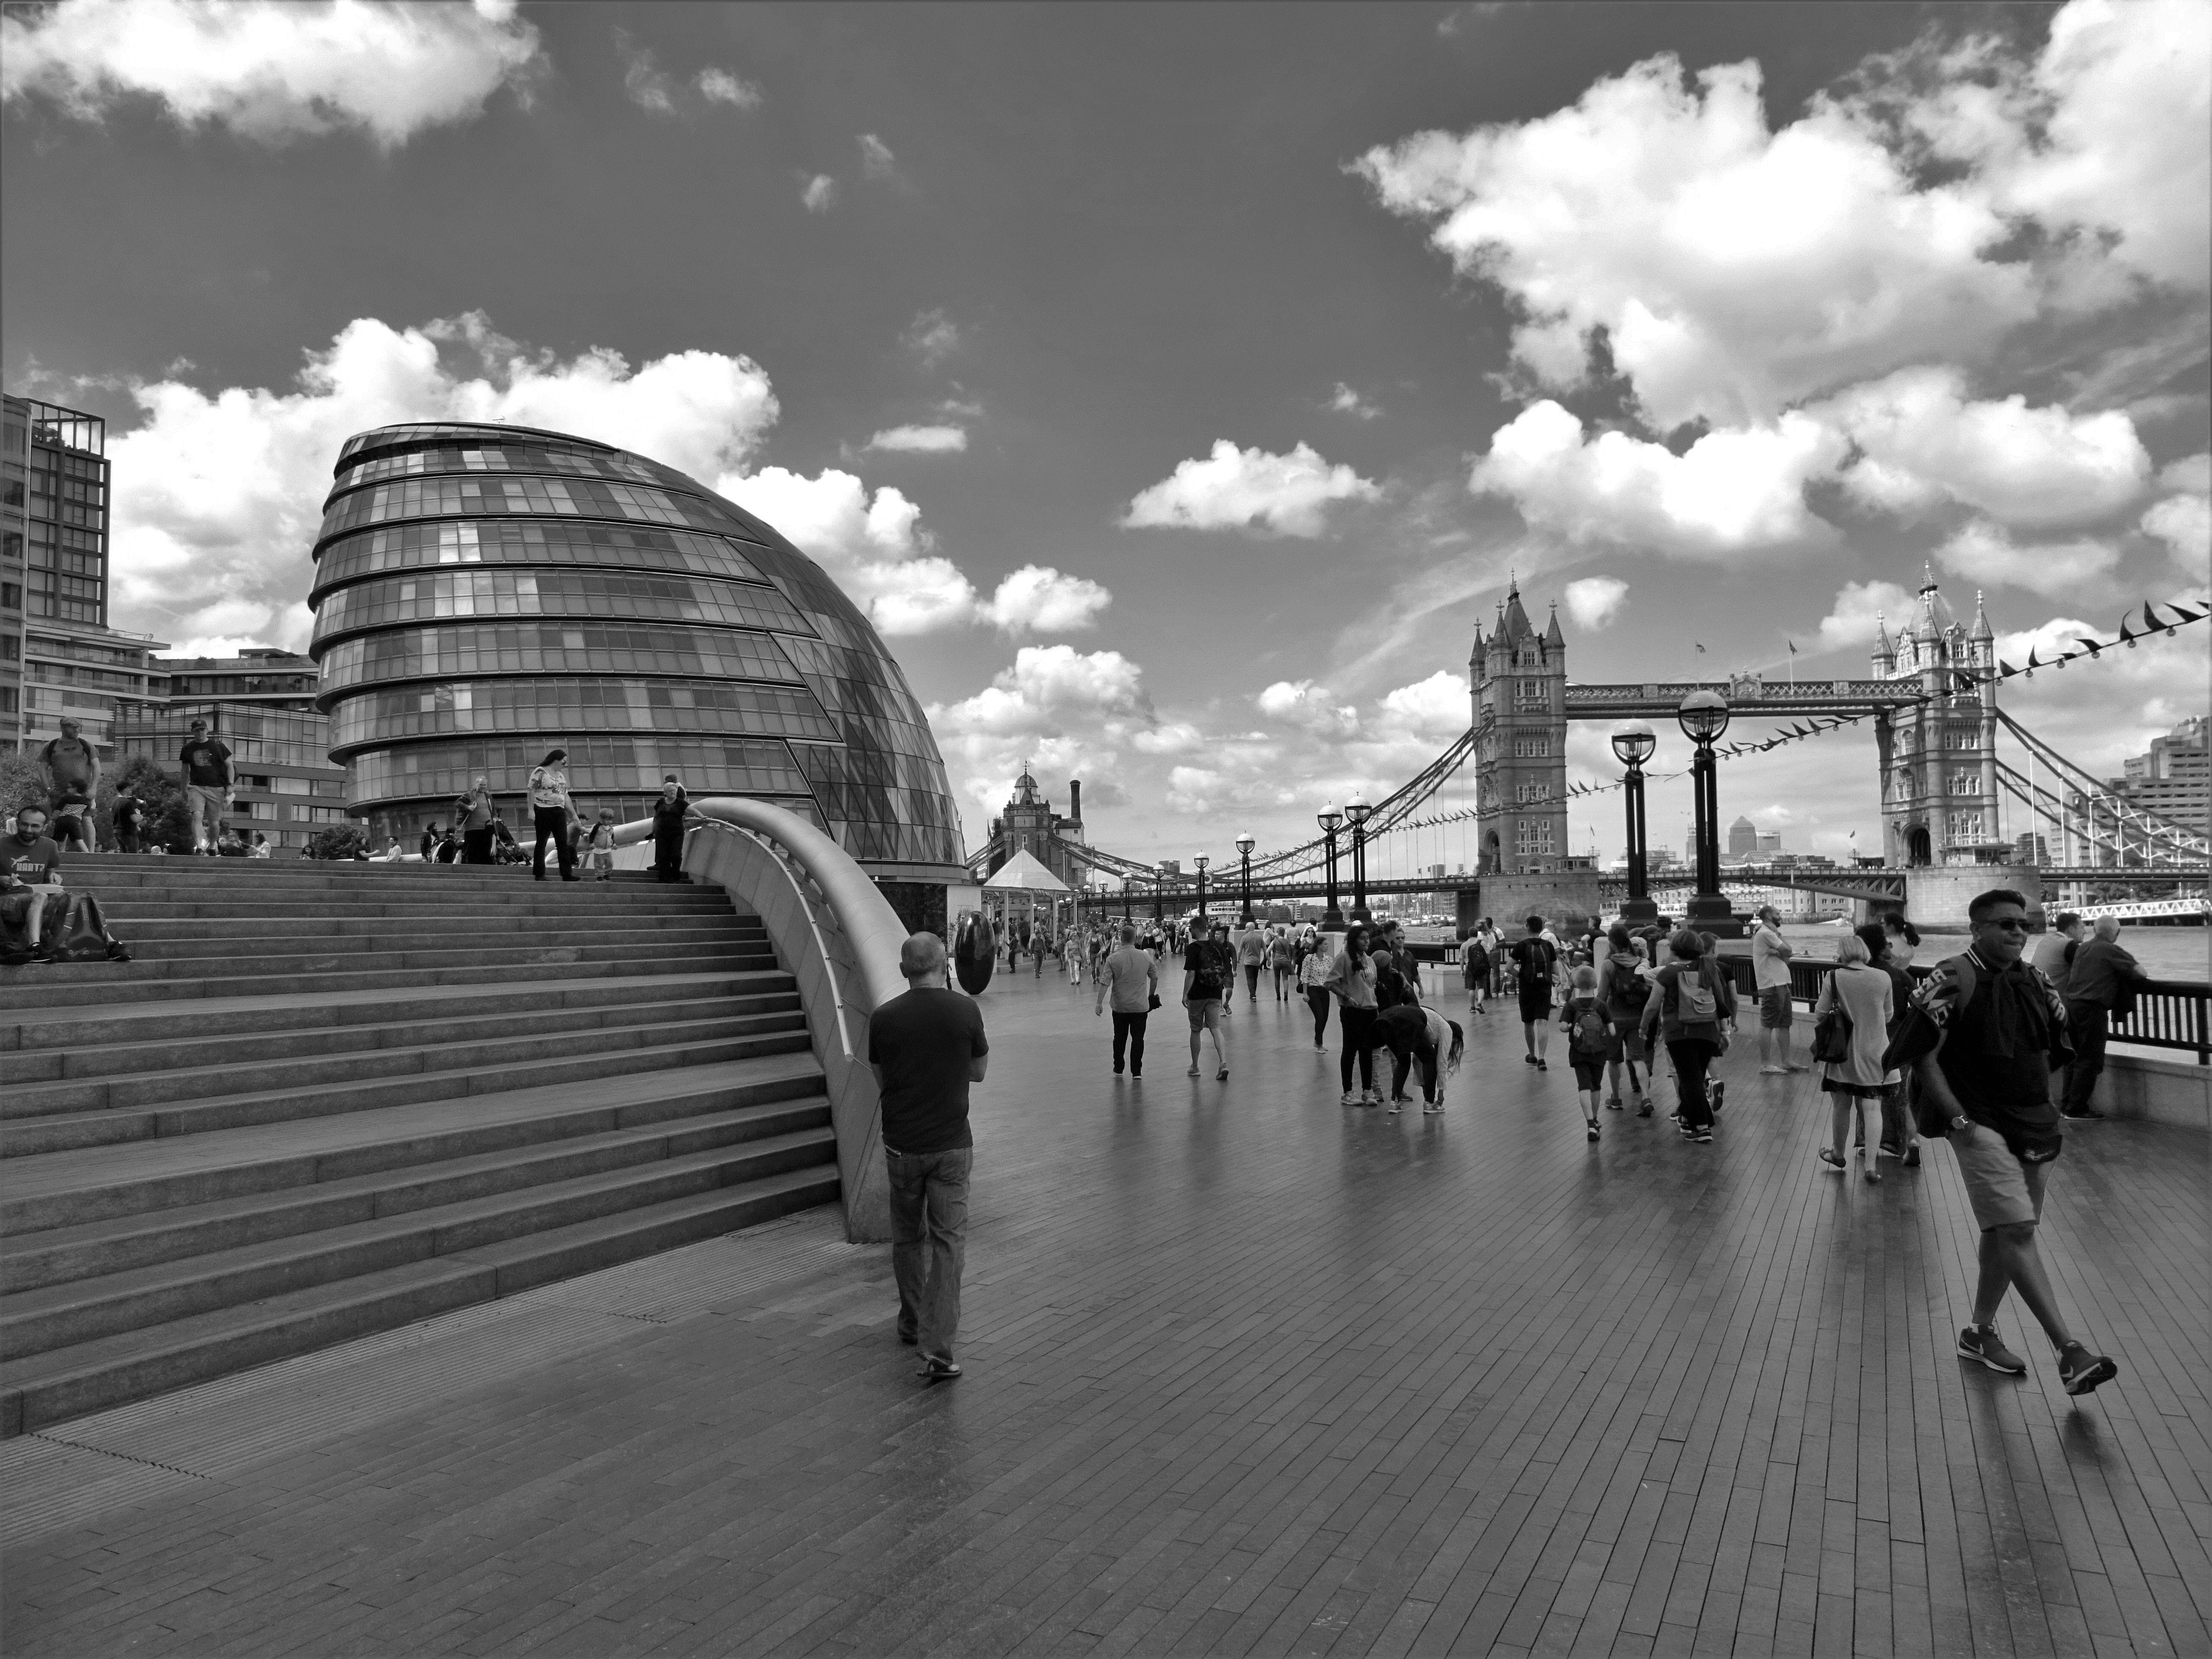 Grayscale Photo of People Walking Near Tower Bridge at London